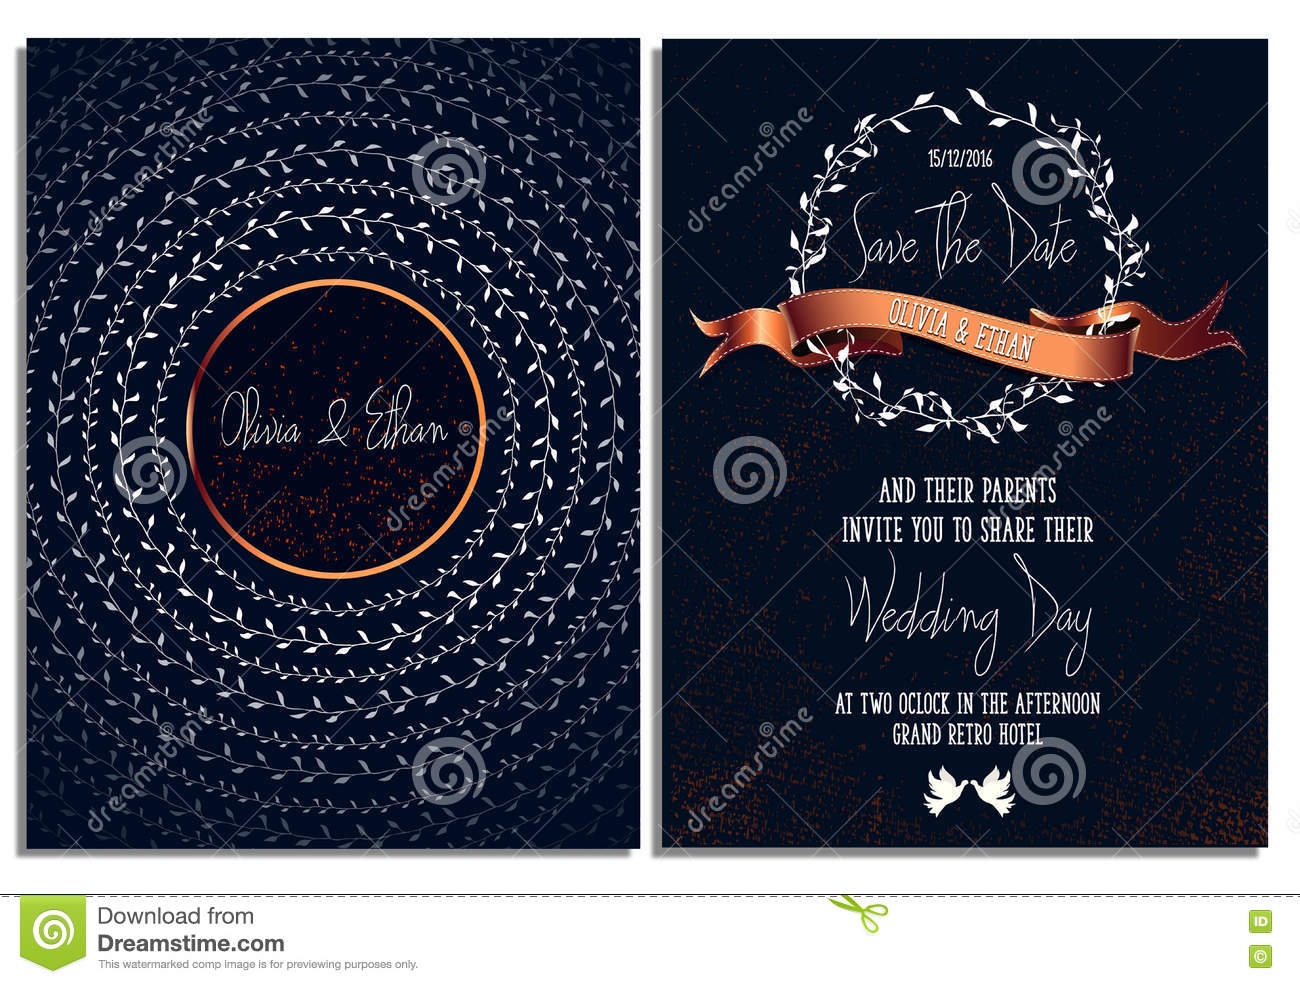 Ready To Print Wedding Invitations: Wedding Invitation Card Template. Print Ready .Save The